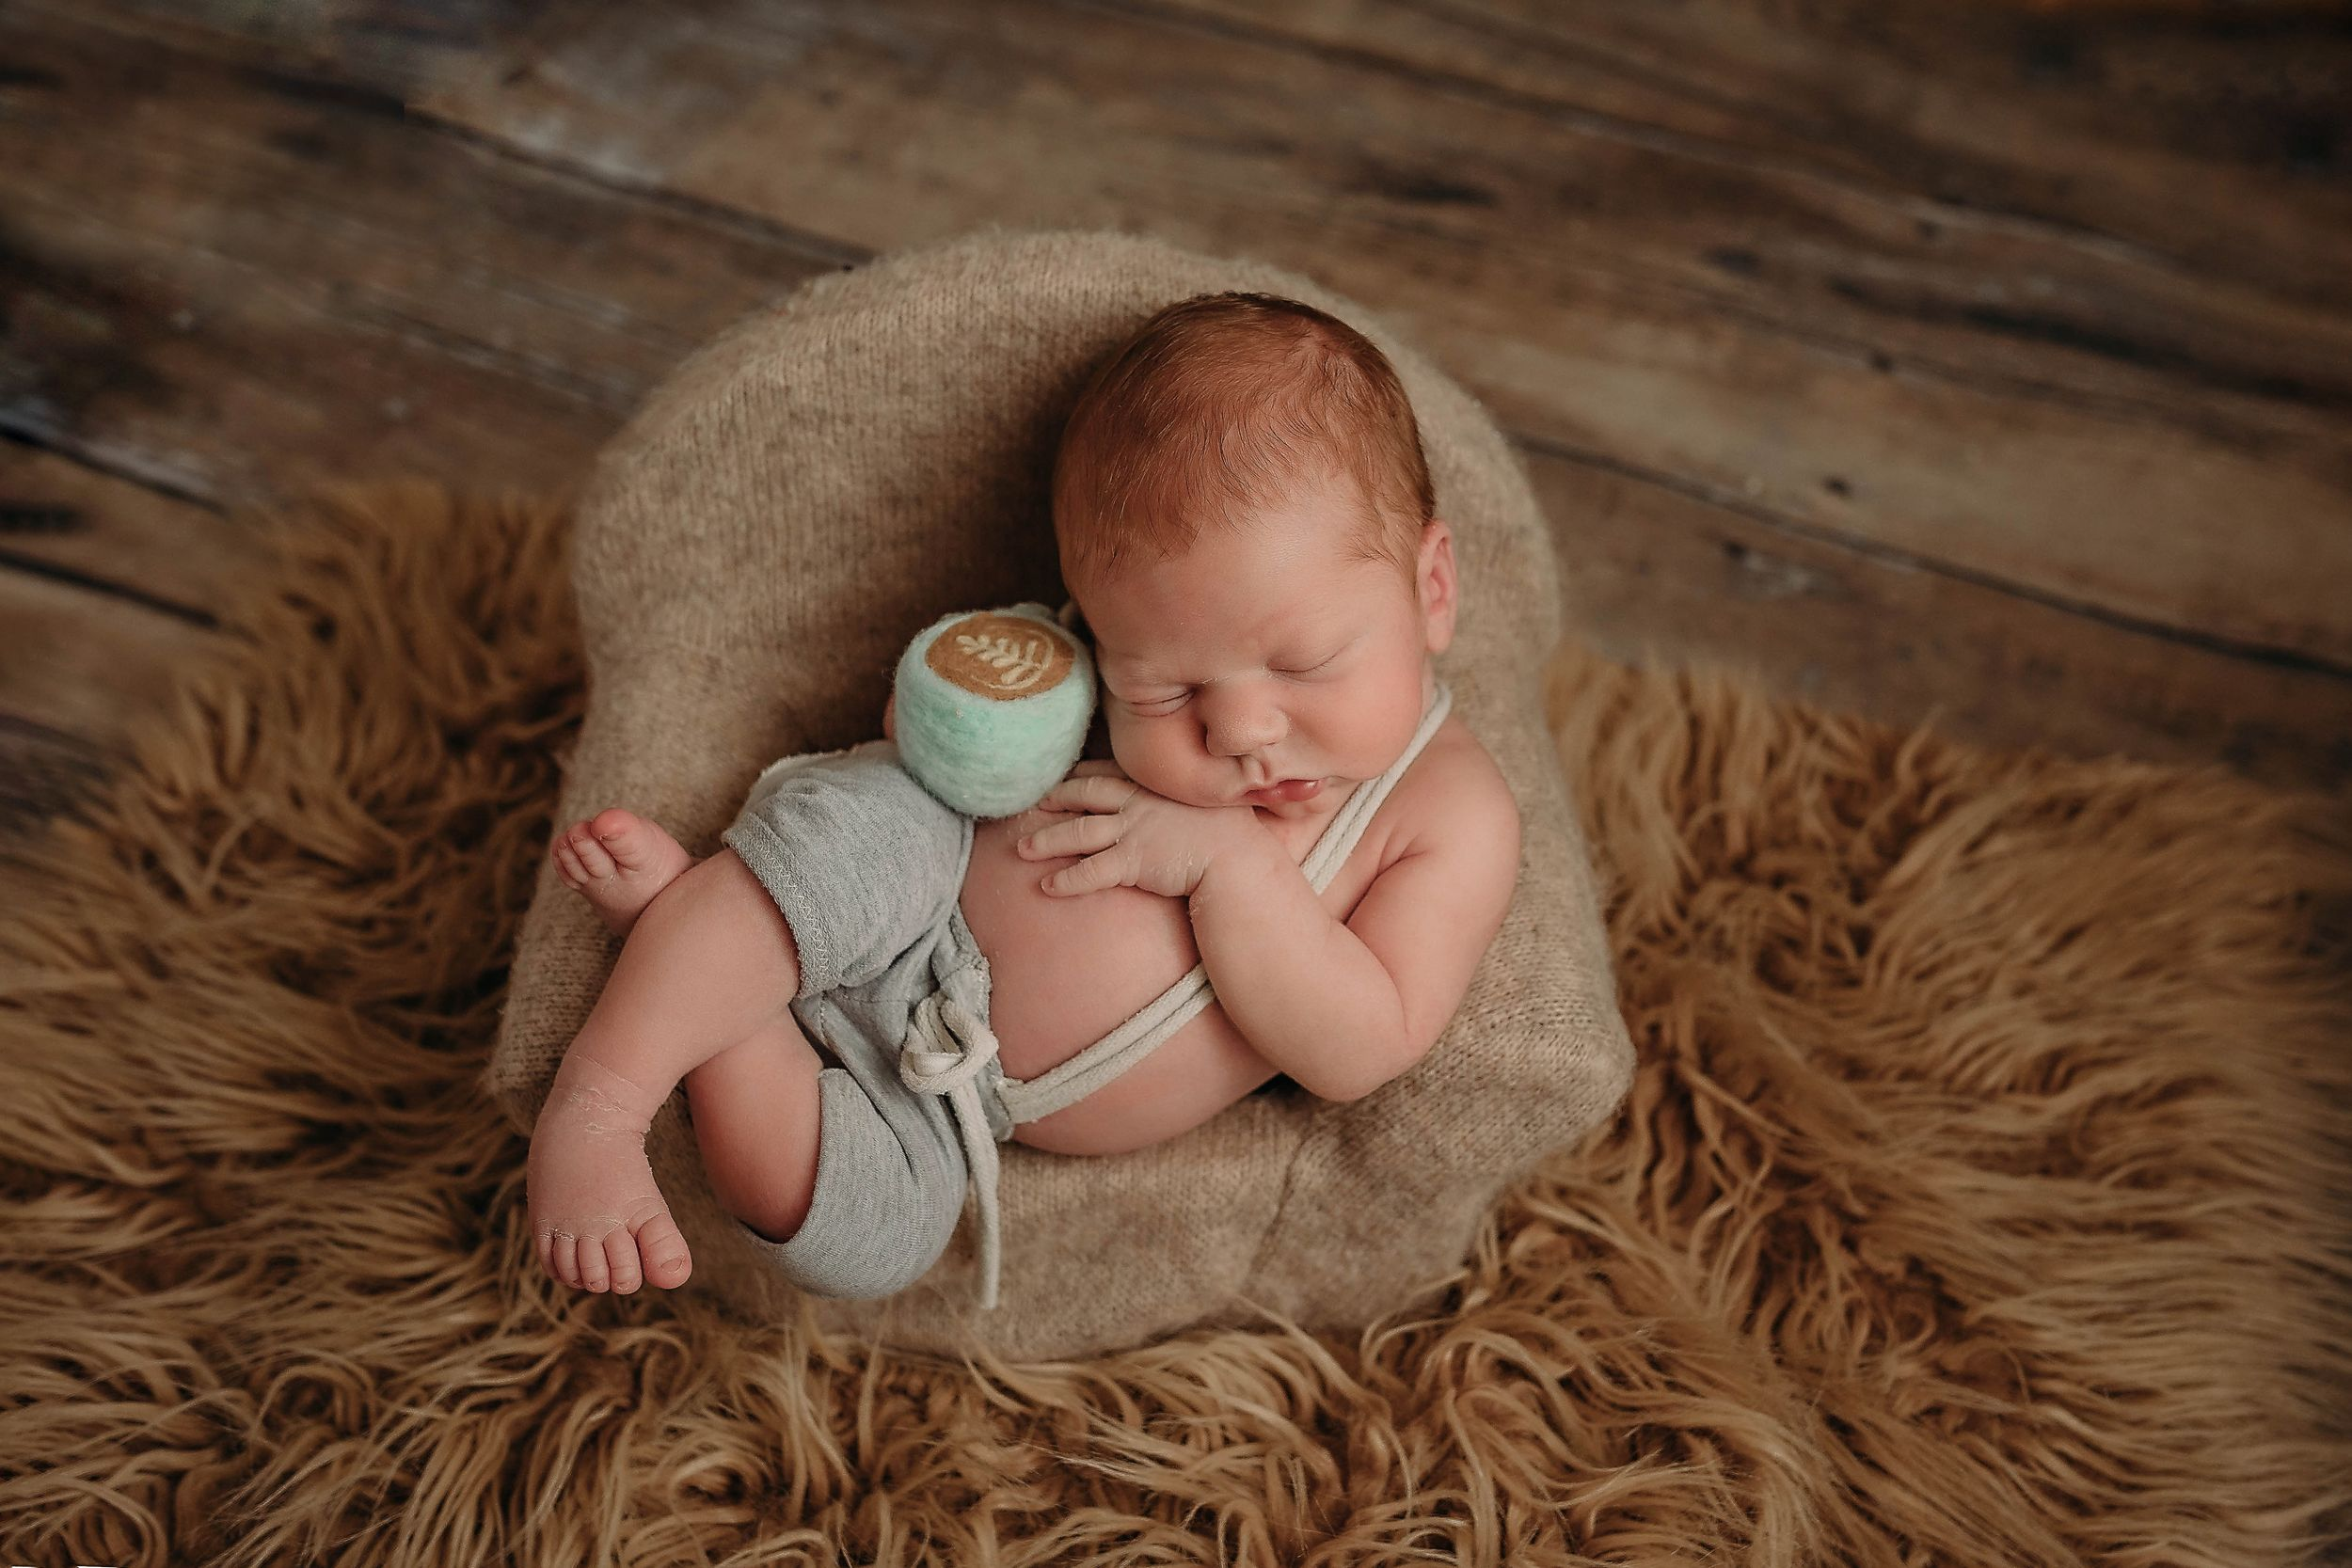 newborn session in Centralia, IL studio session, baby boy, siblings, foliage, newborn prop, advanced posing,